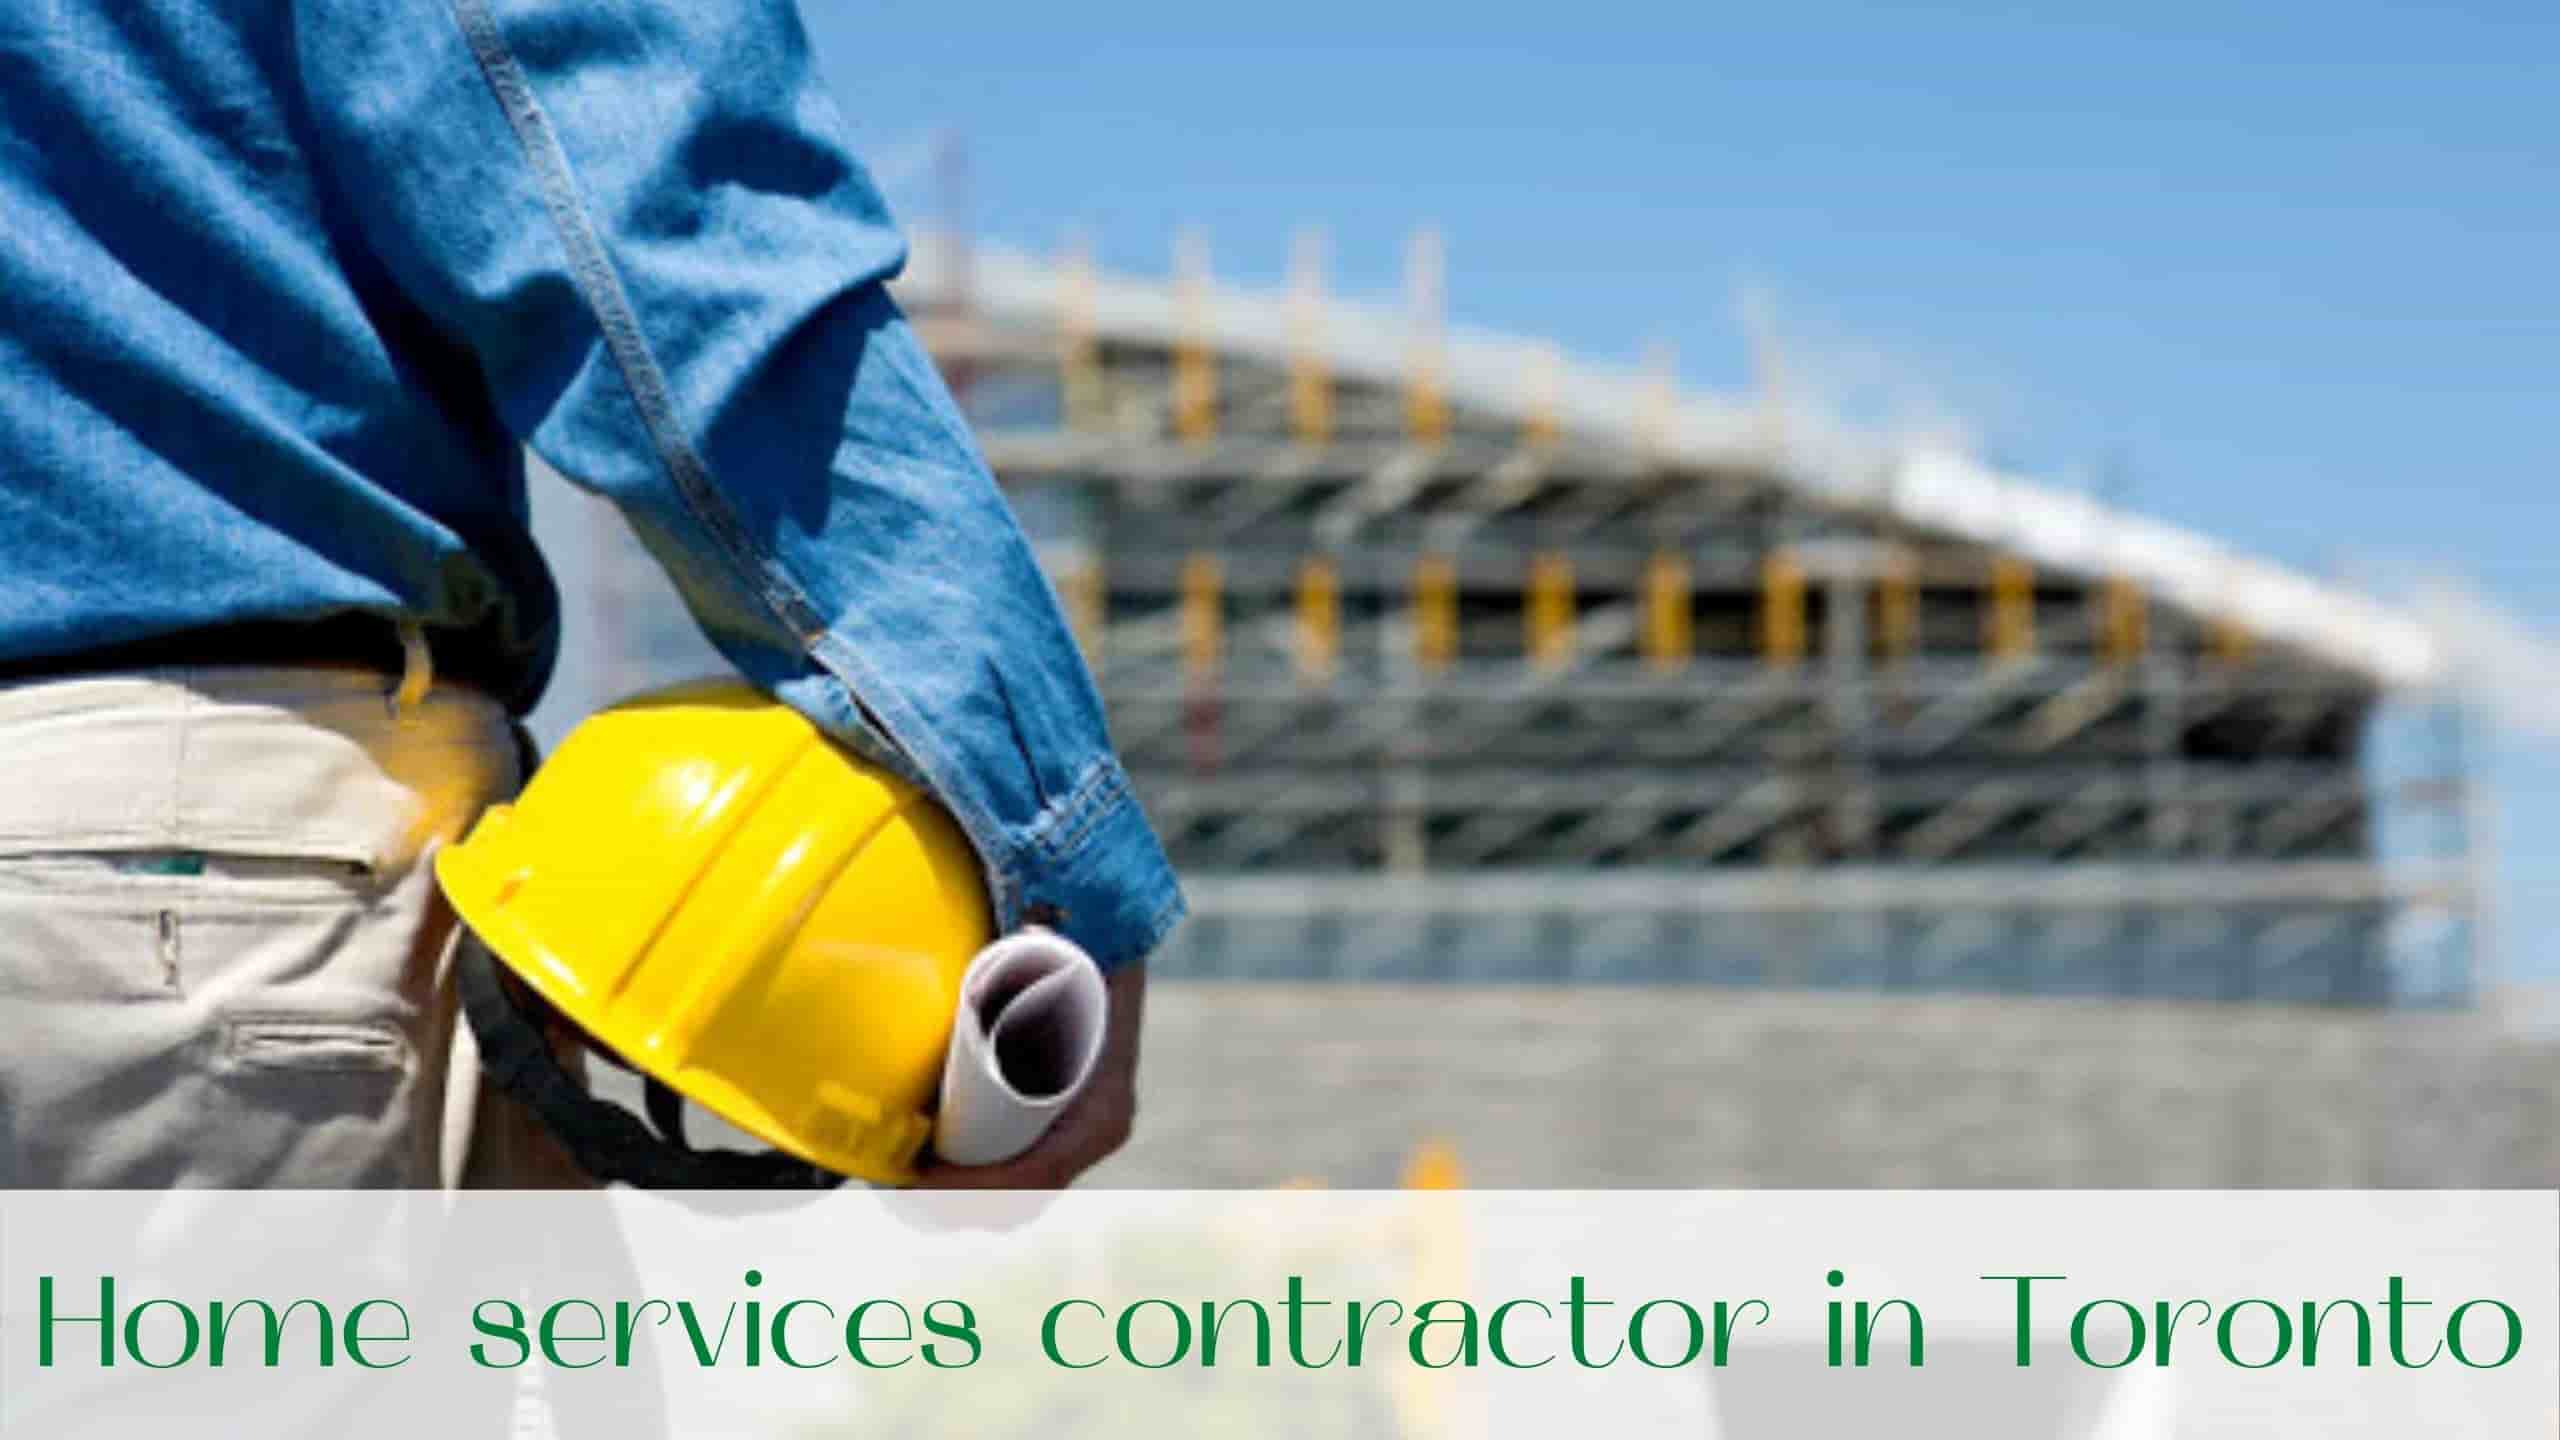 image-home-services-contractor-in-toronto